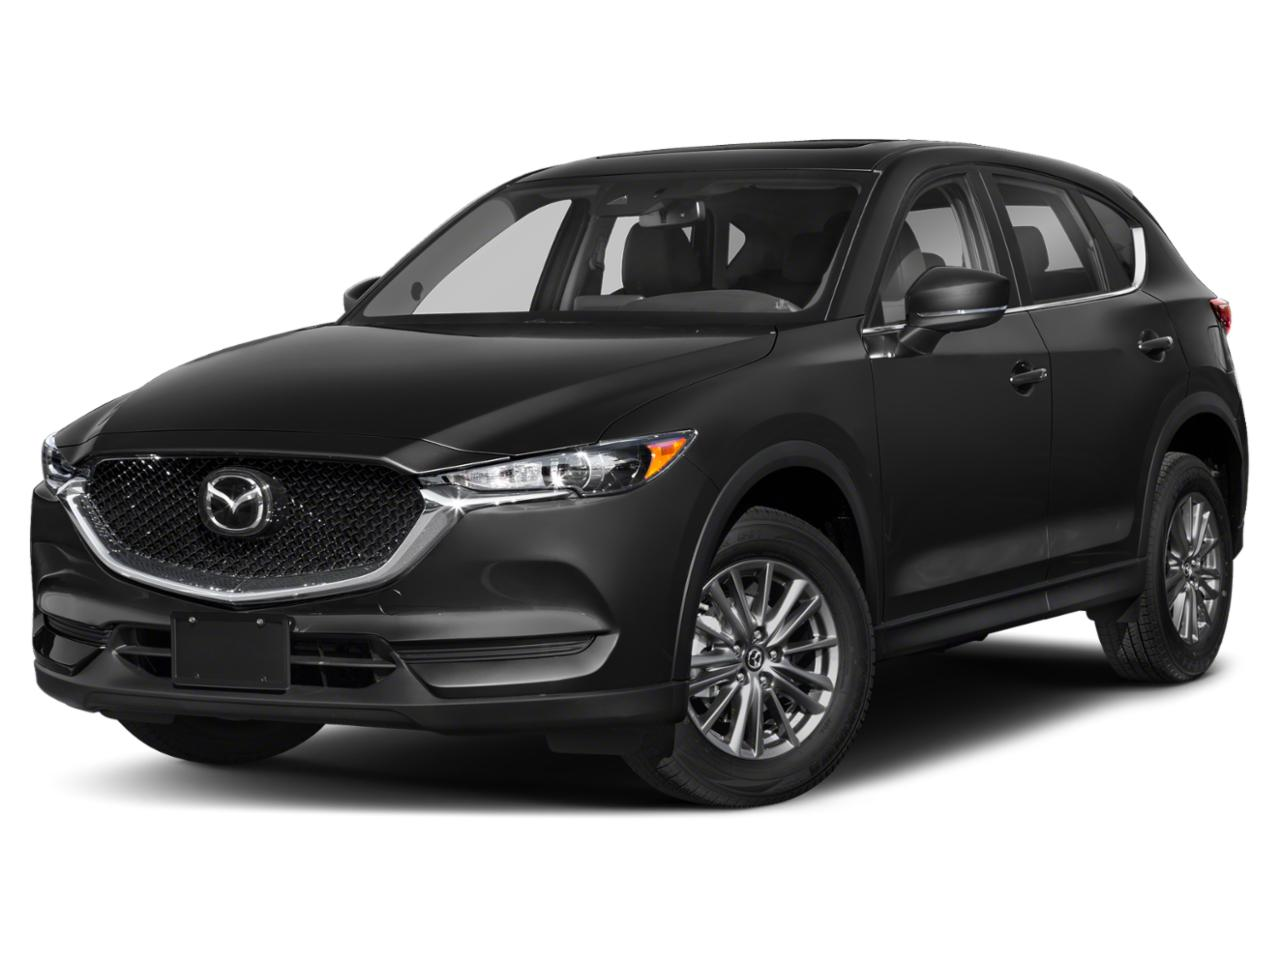 2019 Mazda CX-5 Vehicle Photo in Baton Rouge, LA 70806